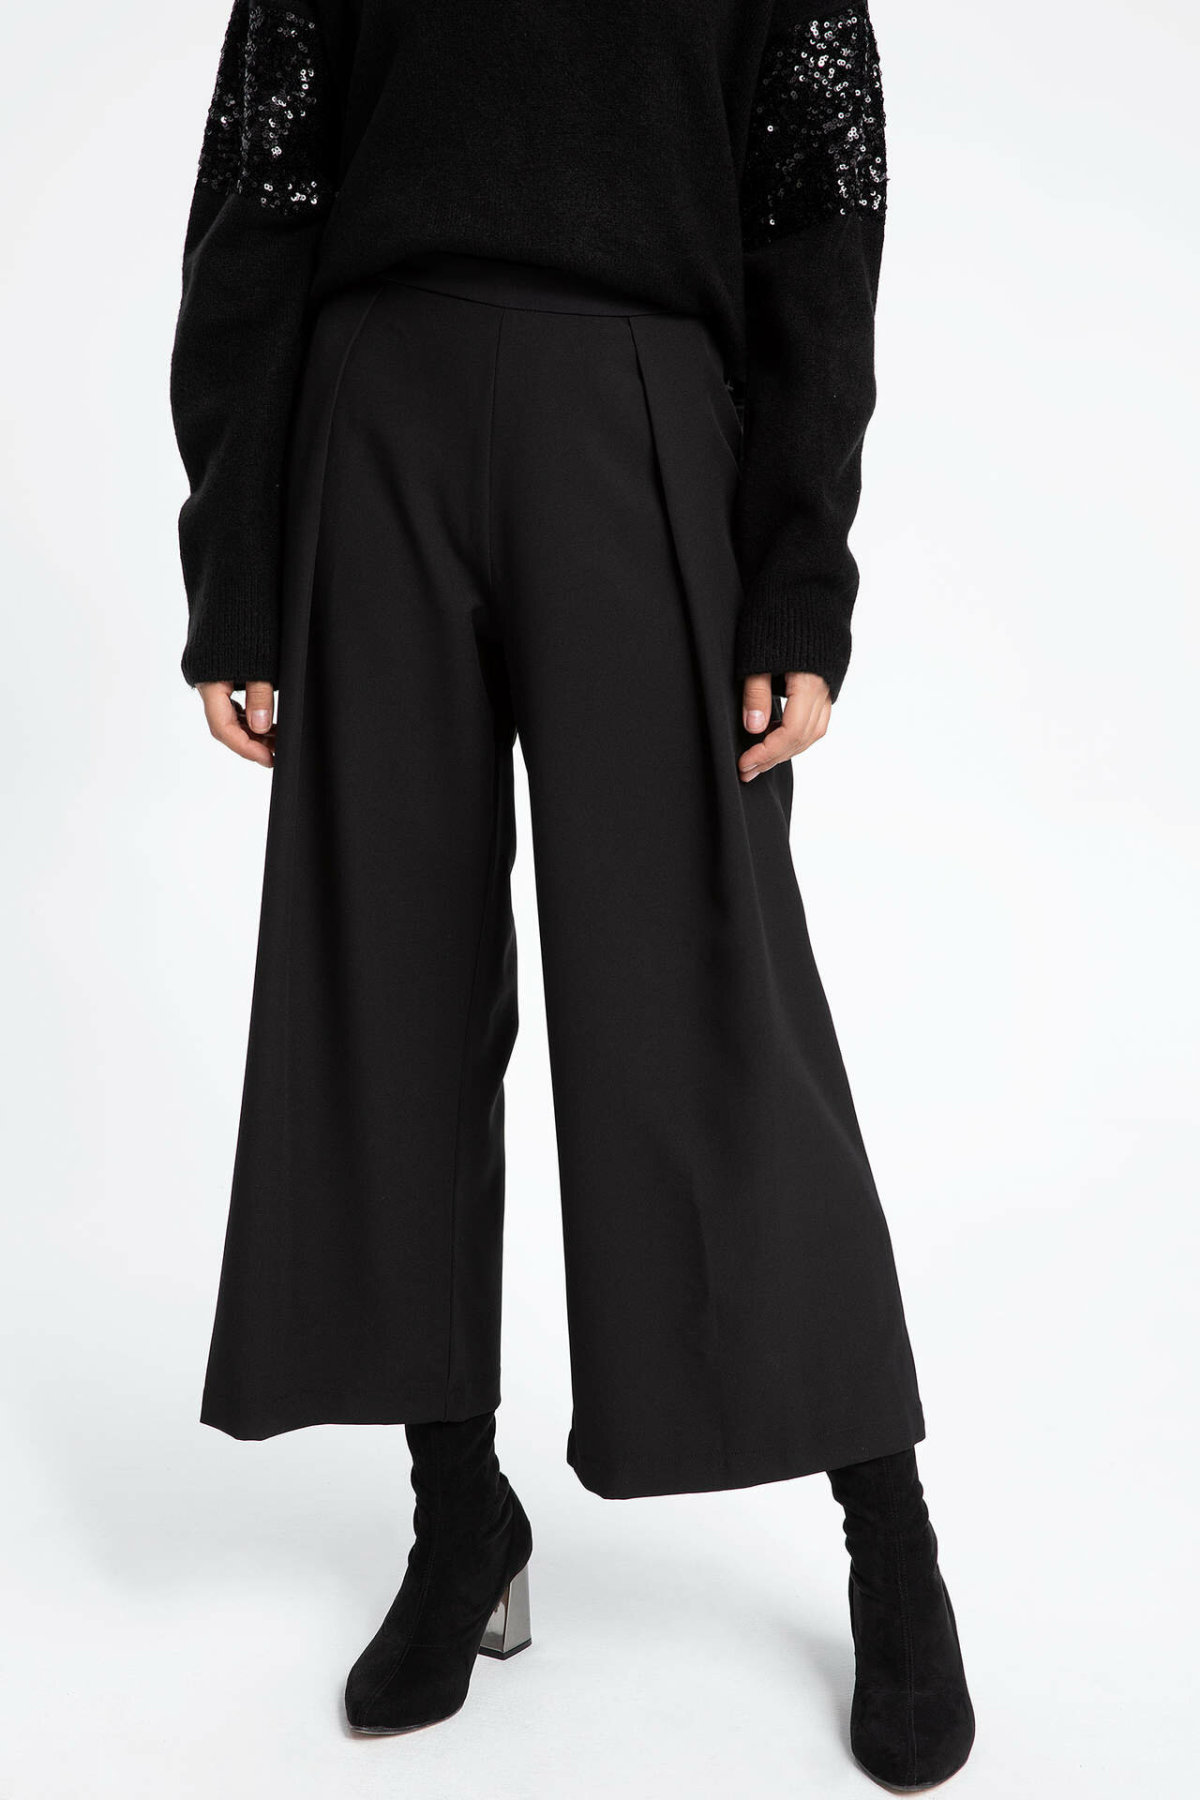 DeFacto Woman Autumn Stylish Wide-leg Pants Women Casual Loose Black Long Pants Female Ninth Trousers-I1833AZ17AU